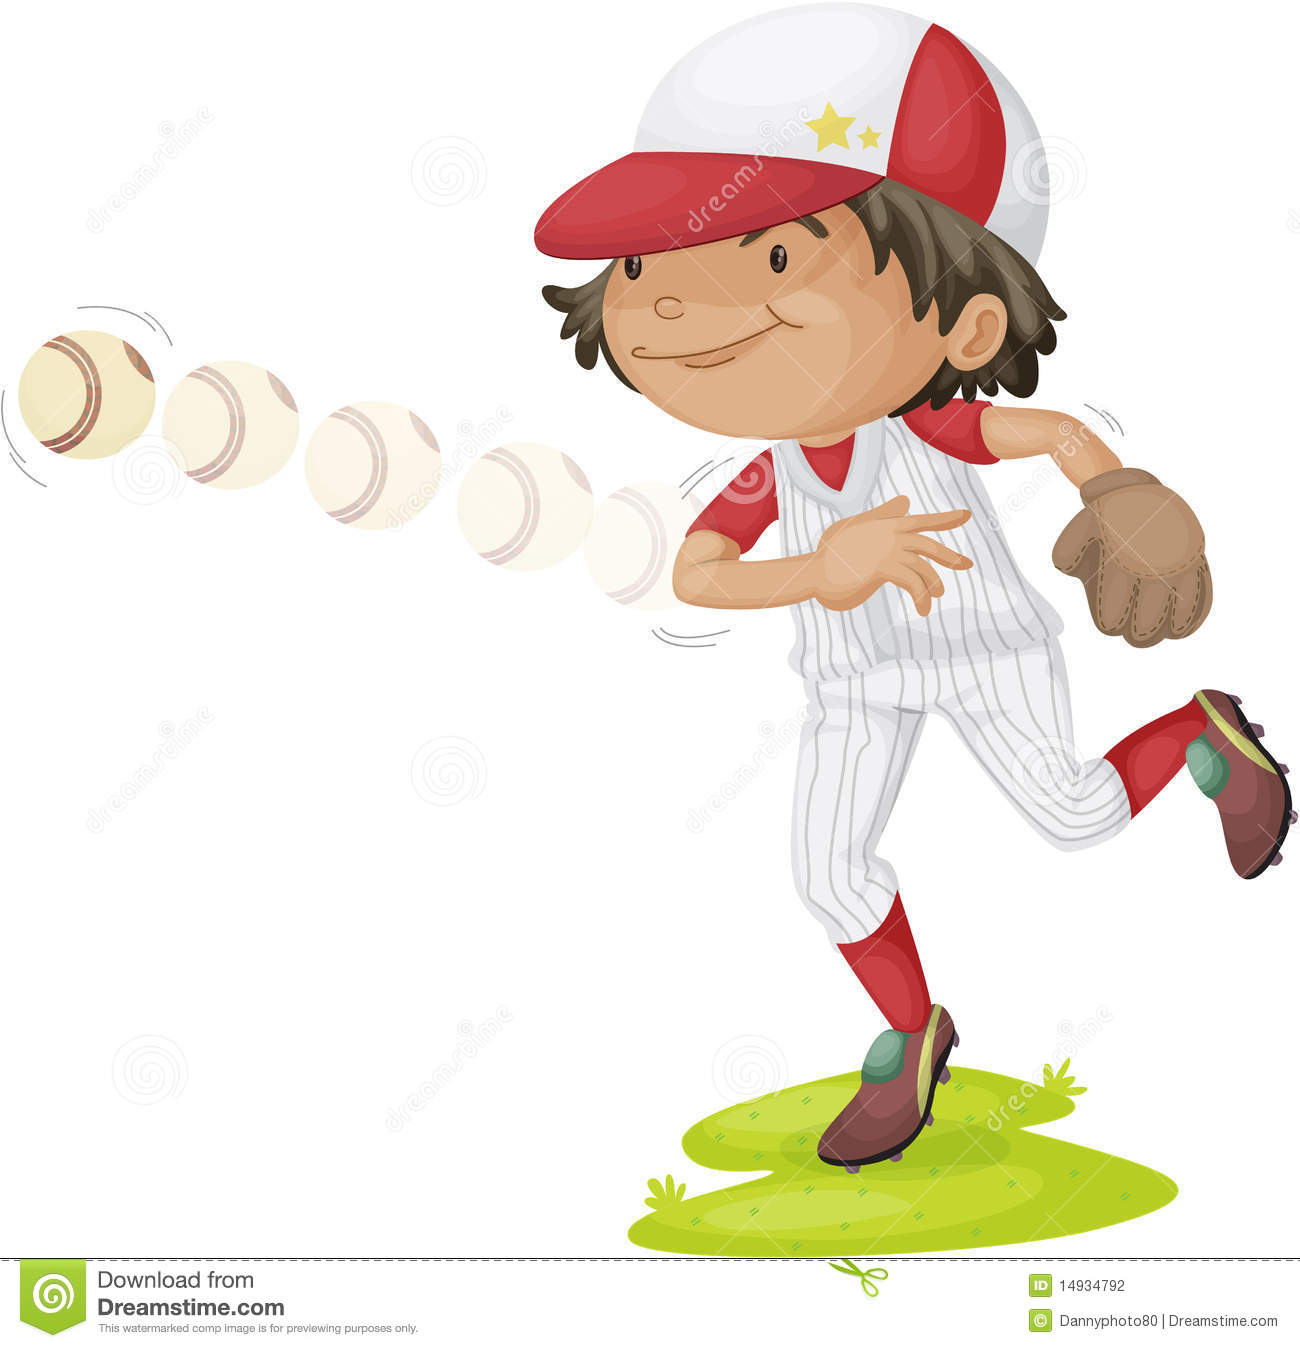 A boy throwing a ball to a boy clipart picture free library A boy throwing a ball to a boy clipart - ClipartFest picture free library